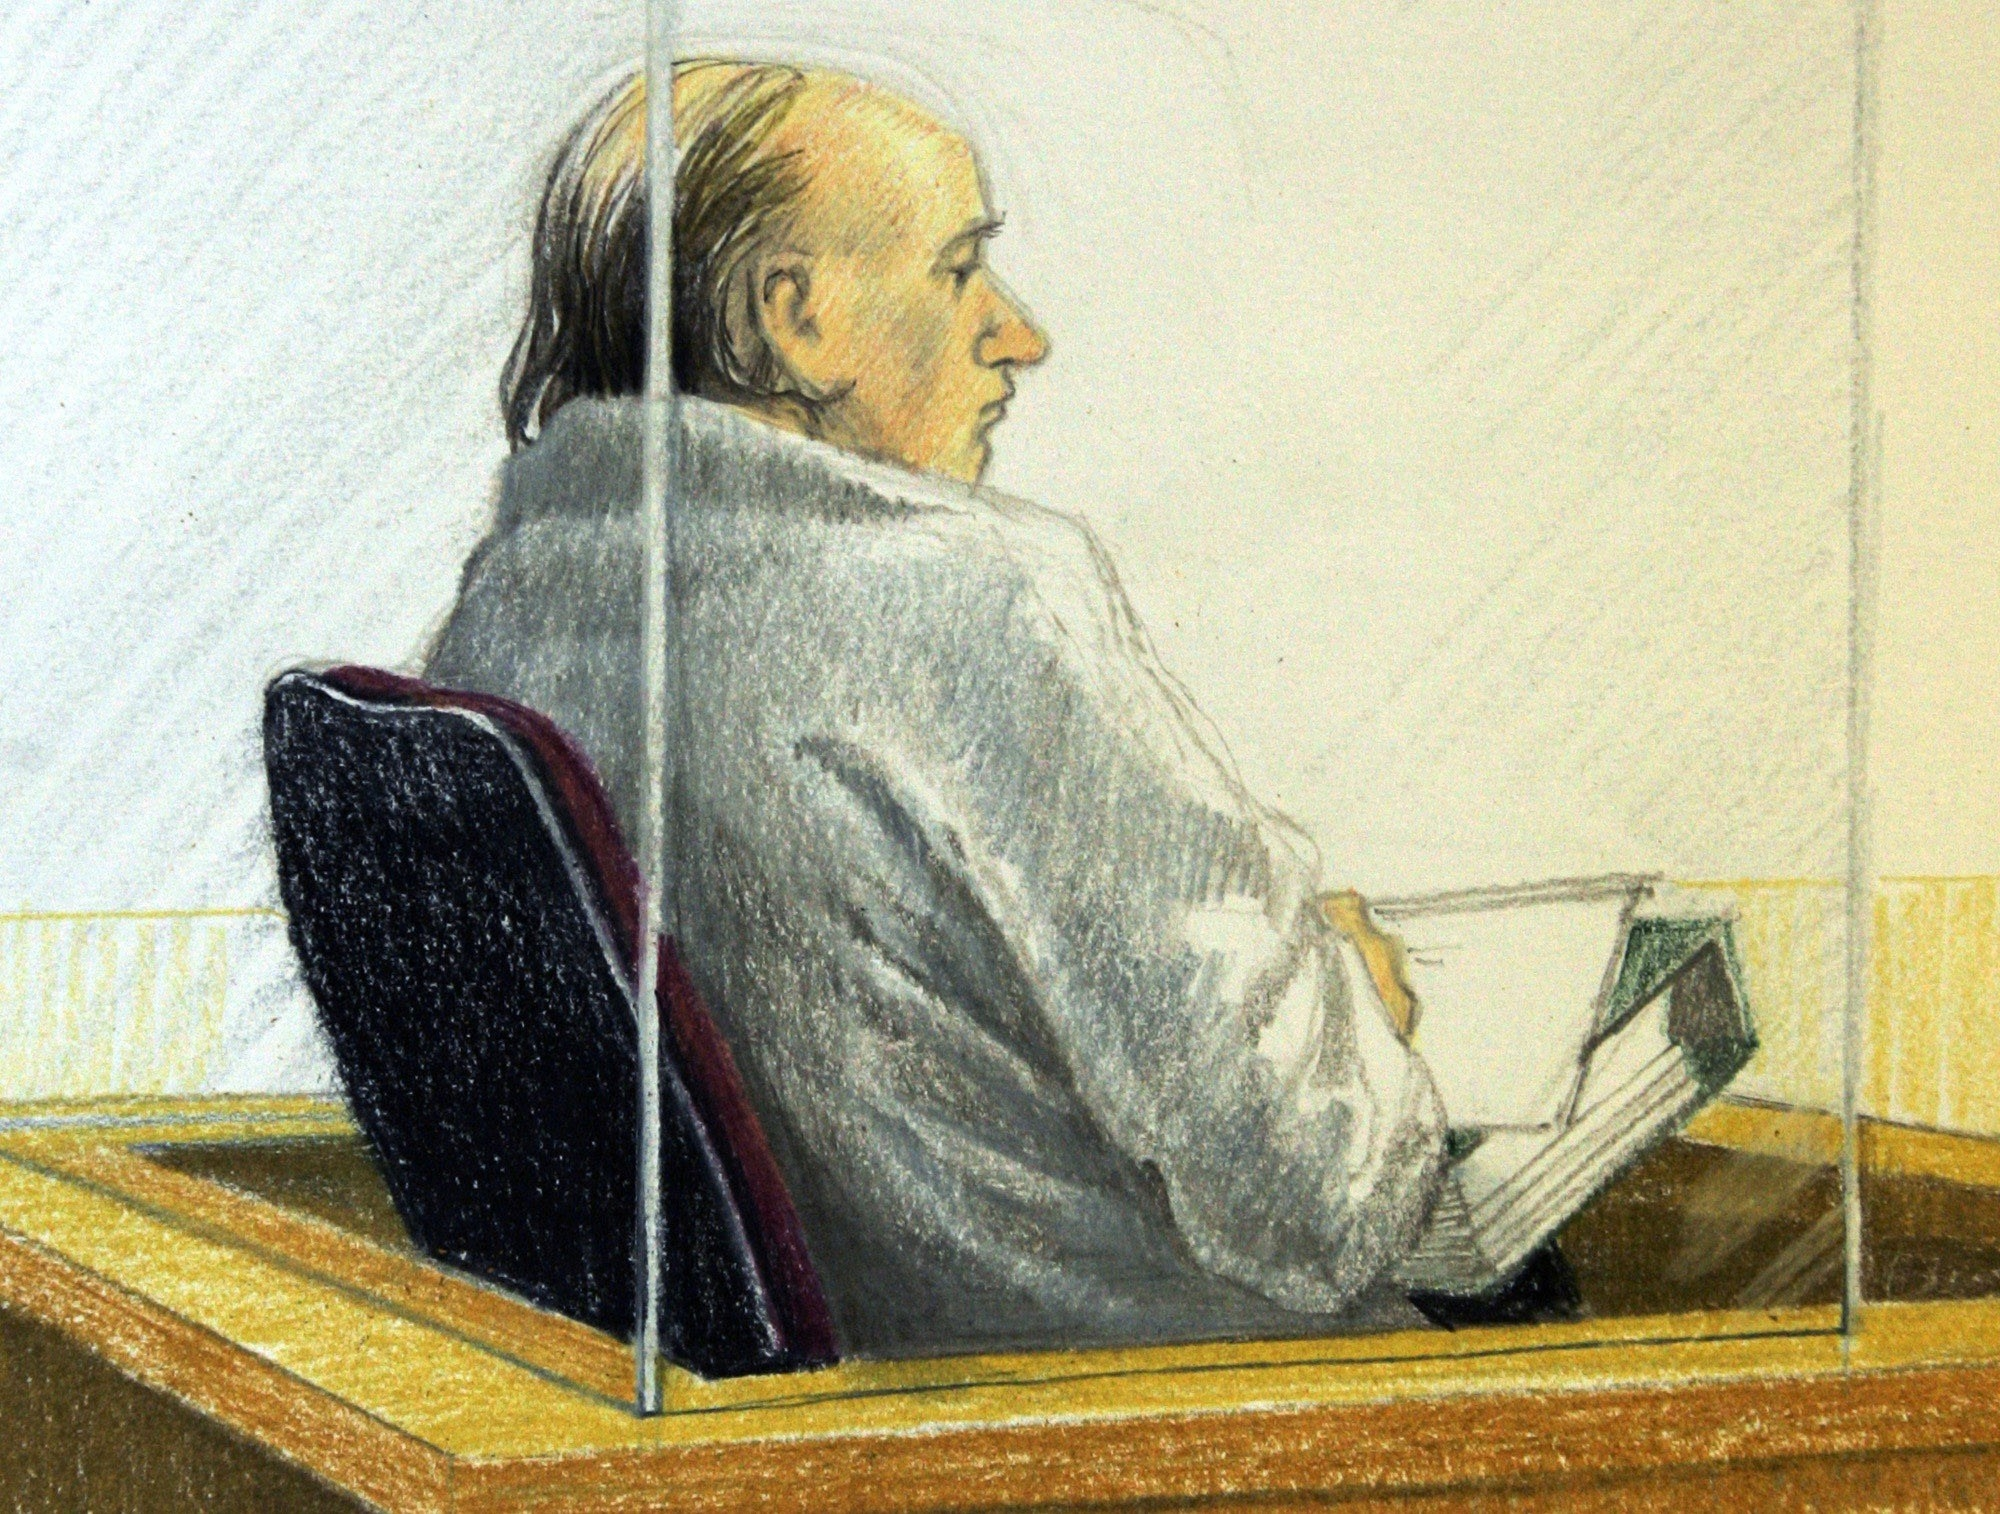 Sketch of Robert Pickton during his trial.